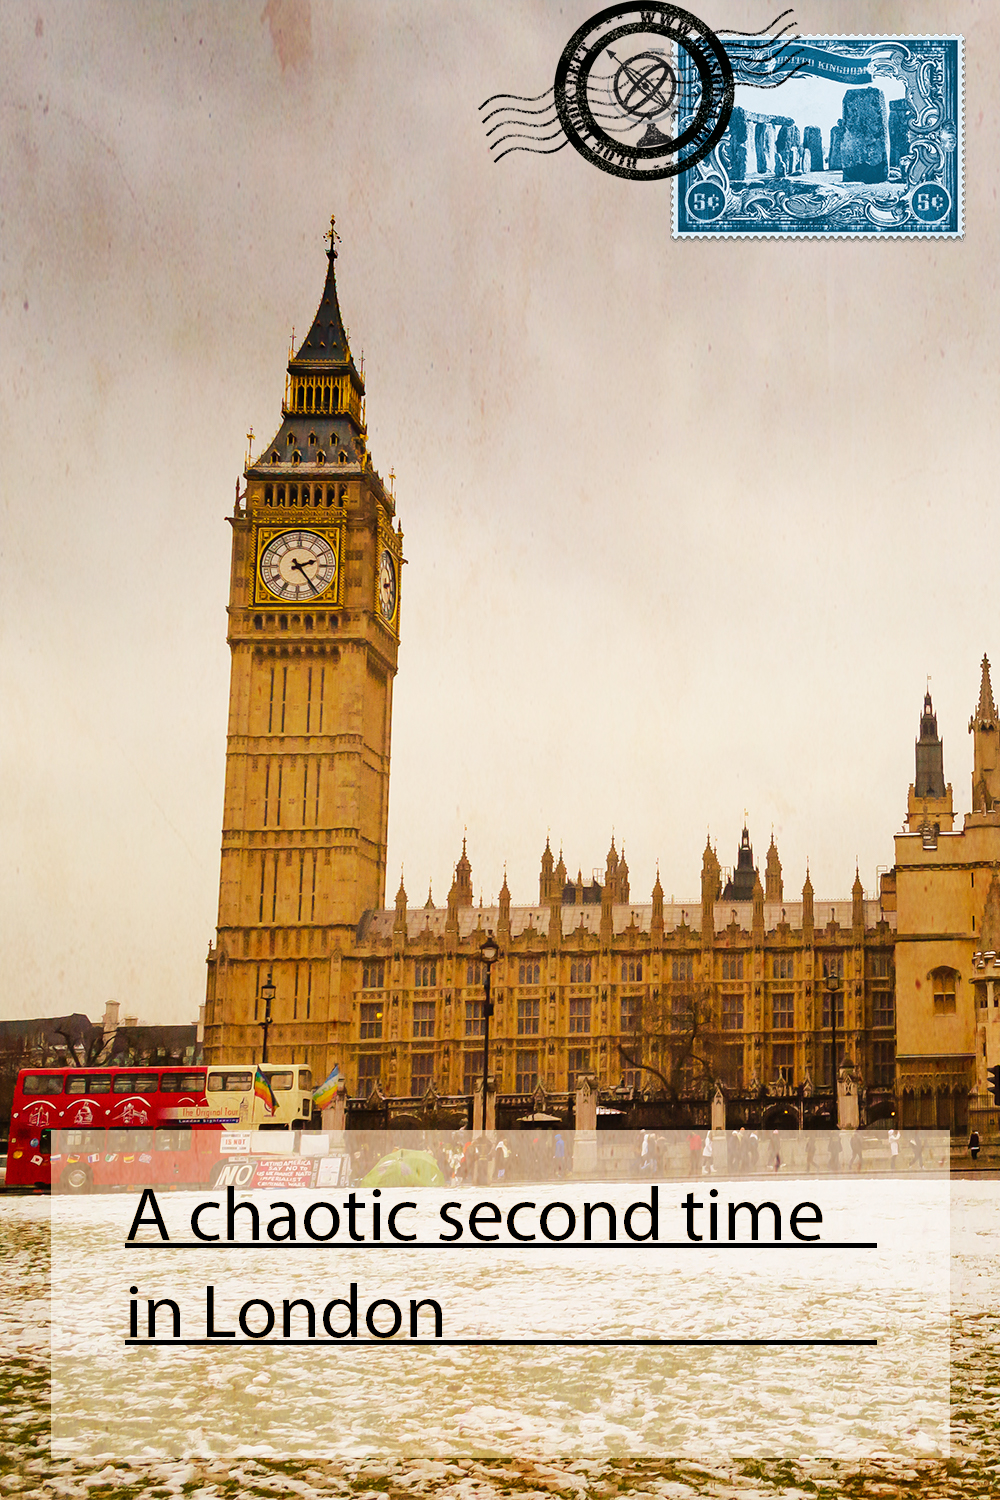 A chaotic second time in London